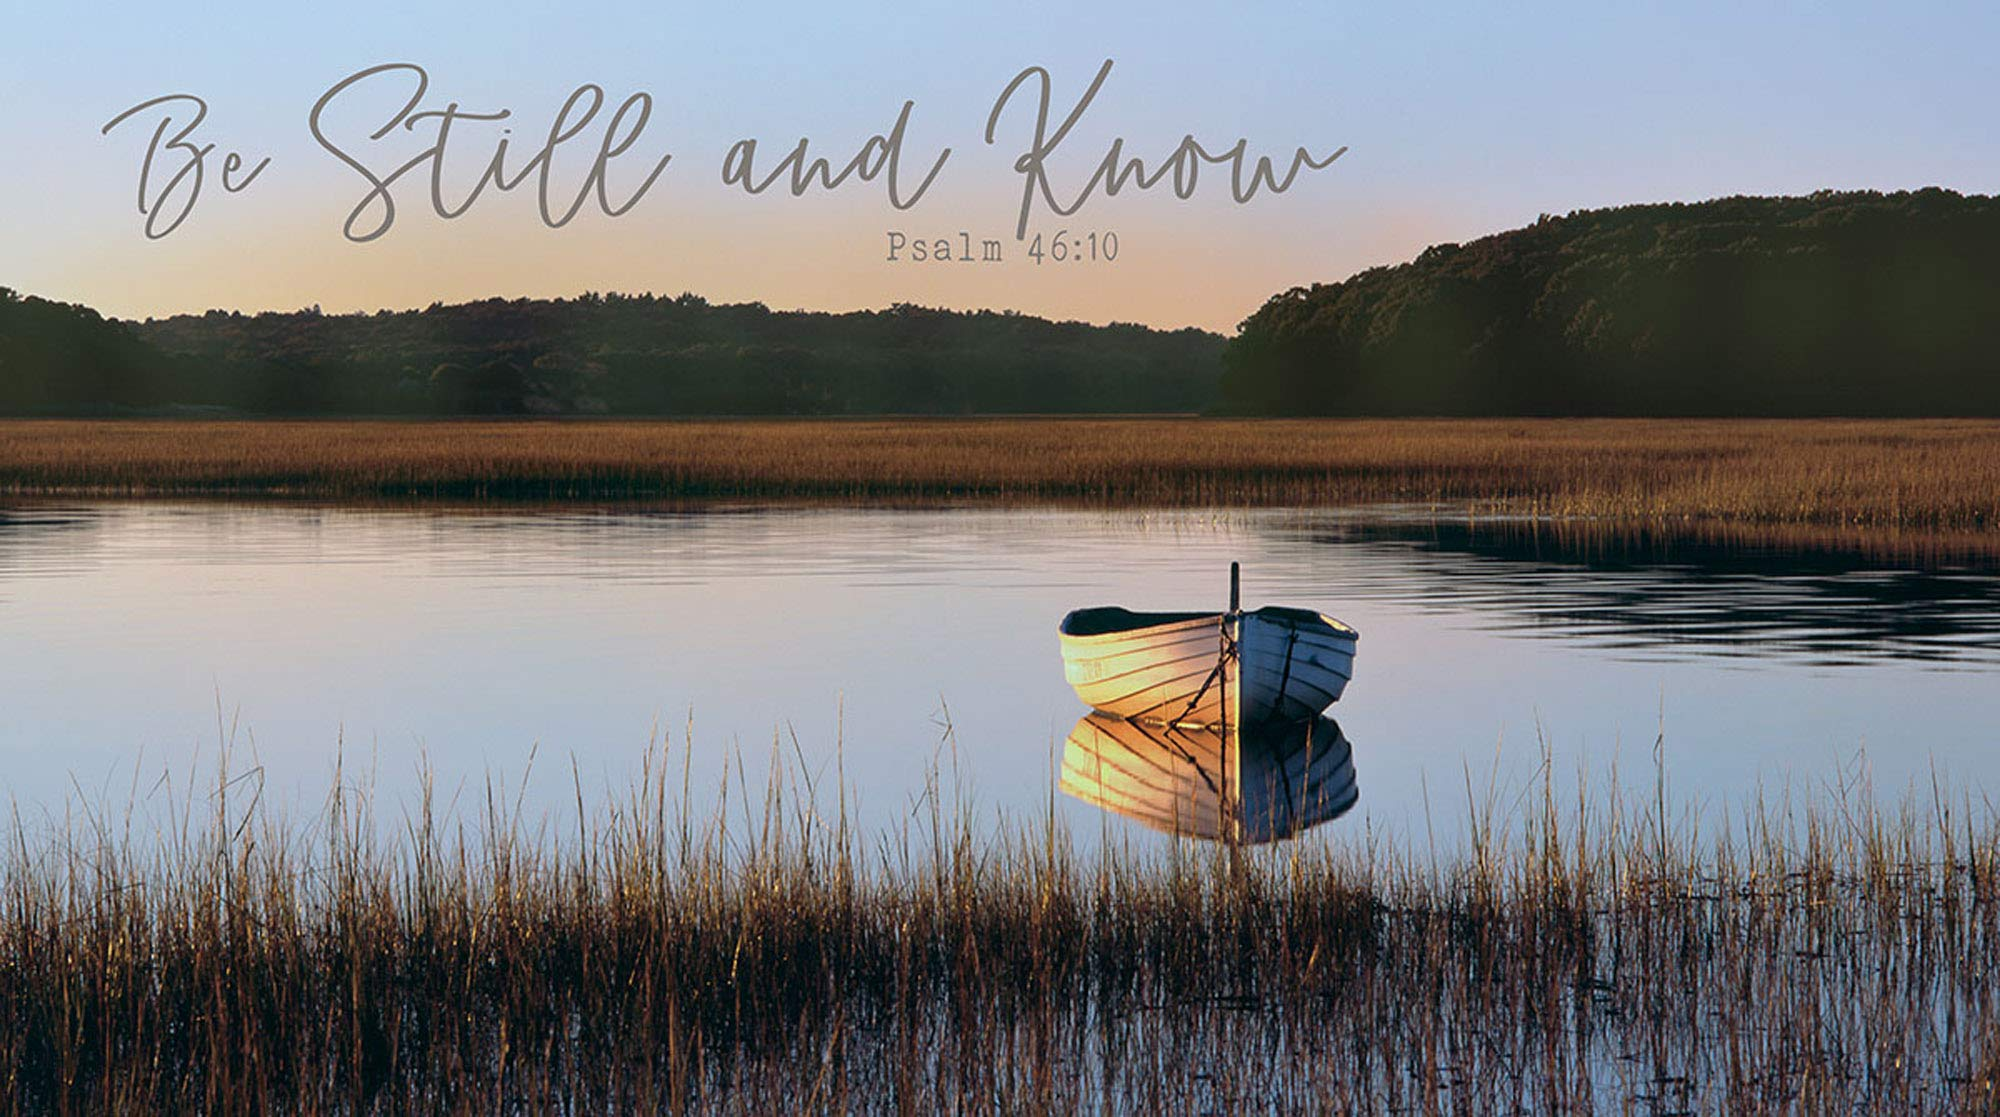 P. Graham Dunn Be Still and Know Lake Row Boat 36 x 20 Inch Wood Printed Decorative Wall Plaque Sign by P. Graham Dunn